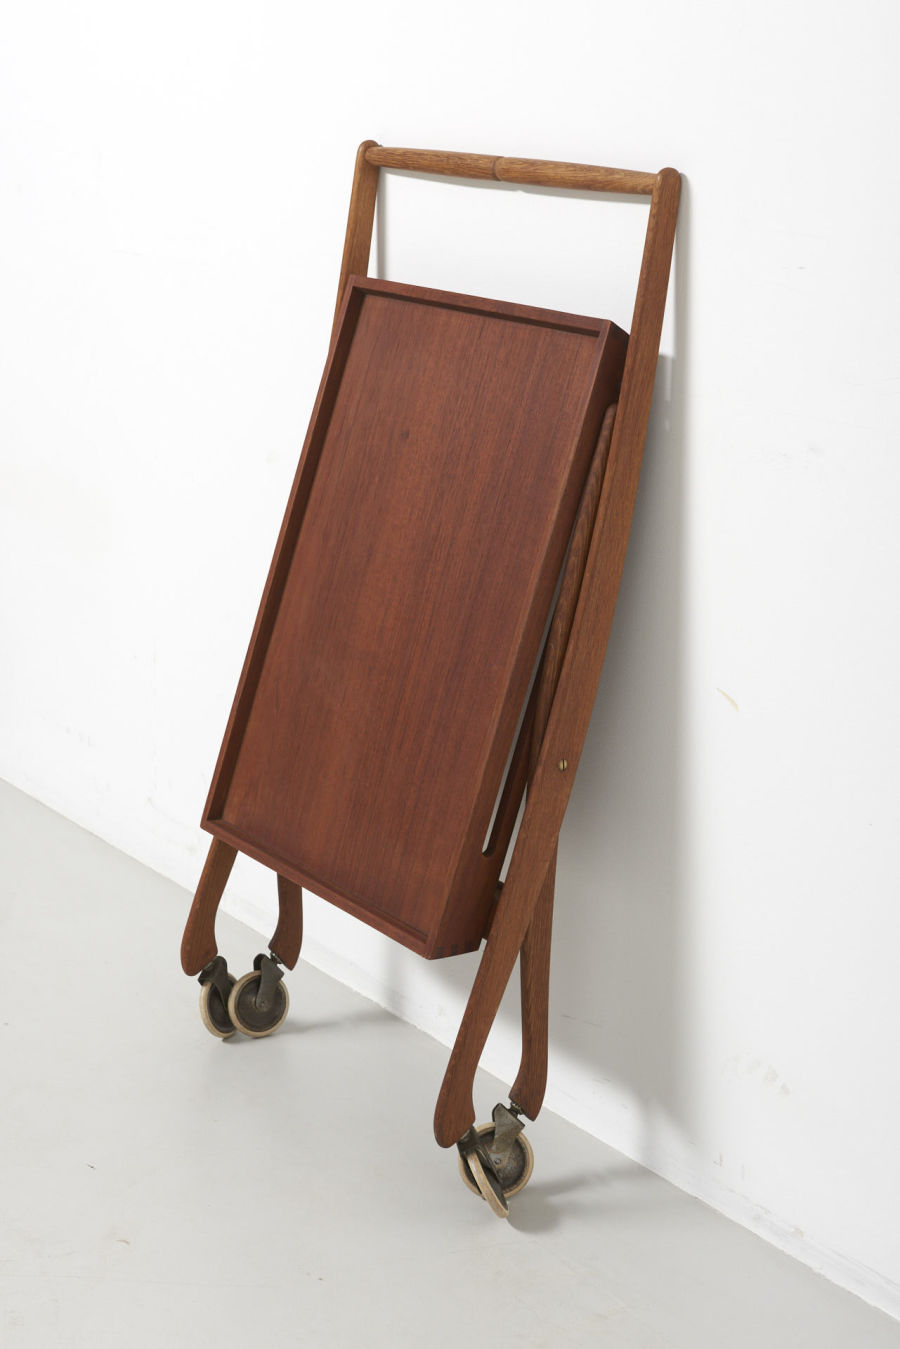 modestfurniture-vintage-2488-foldable-trolley-oak-and-teak01